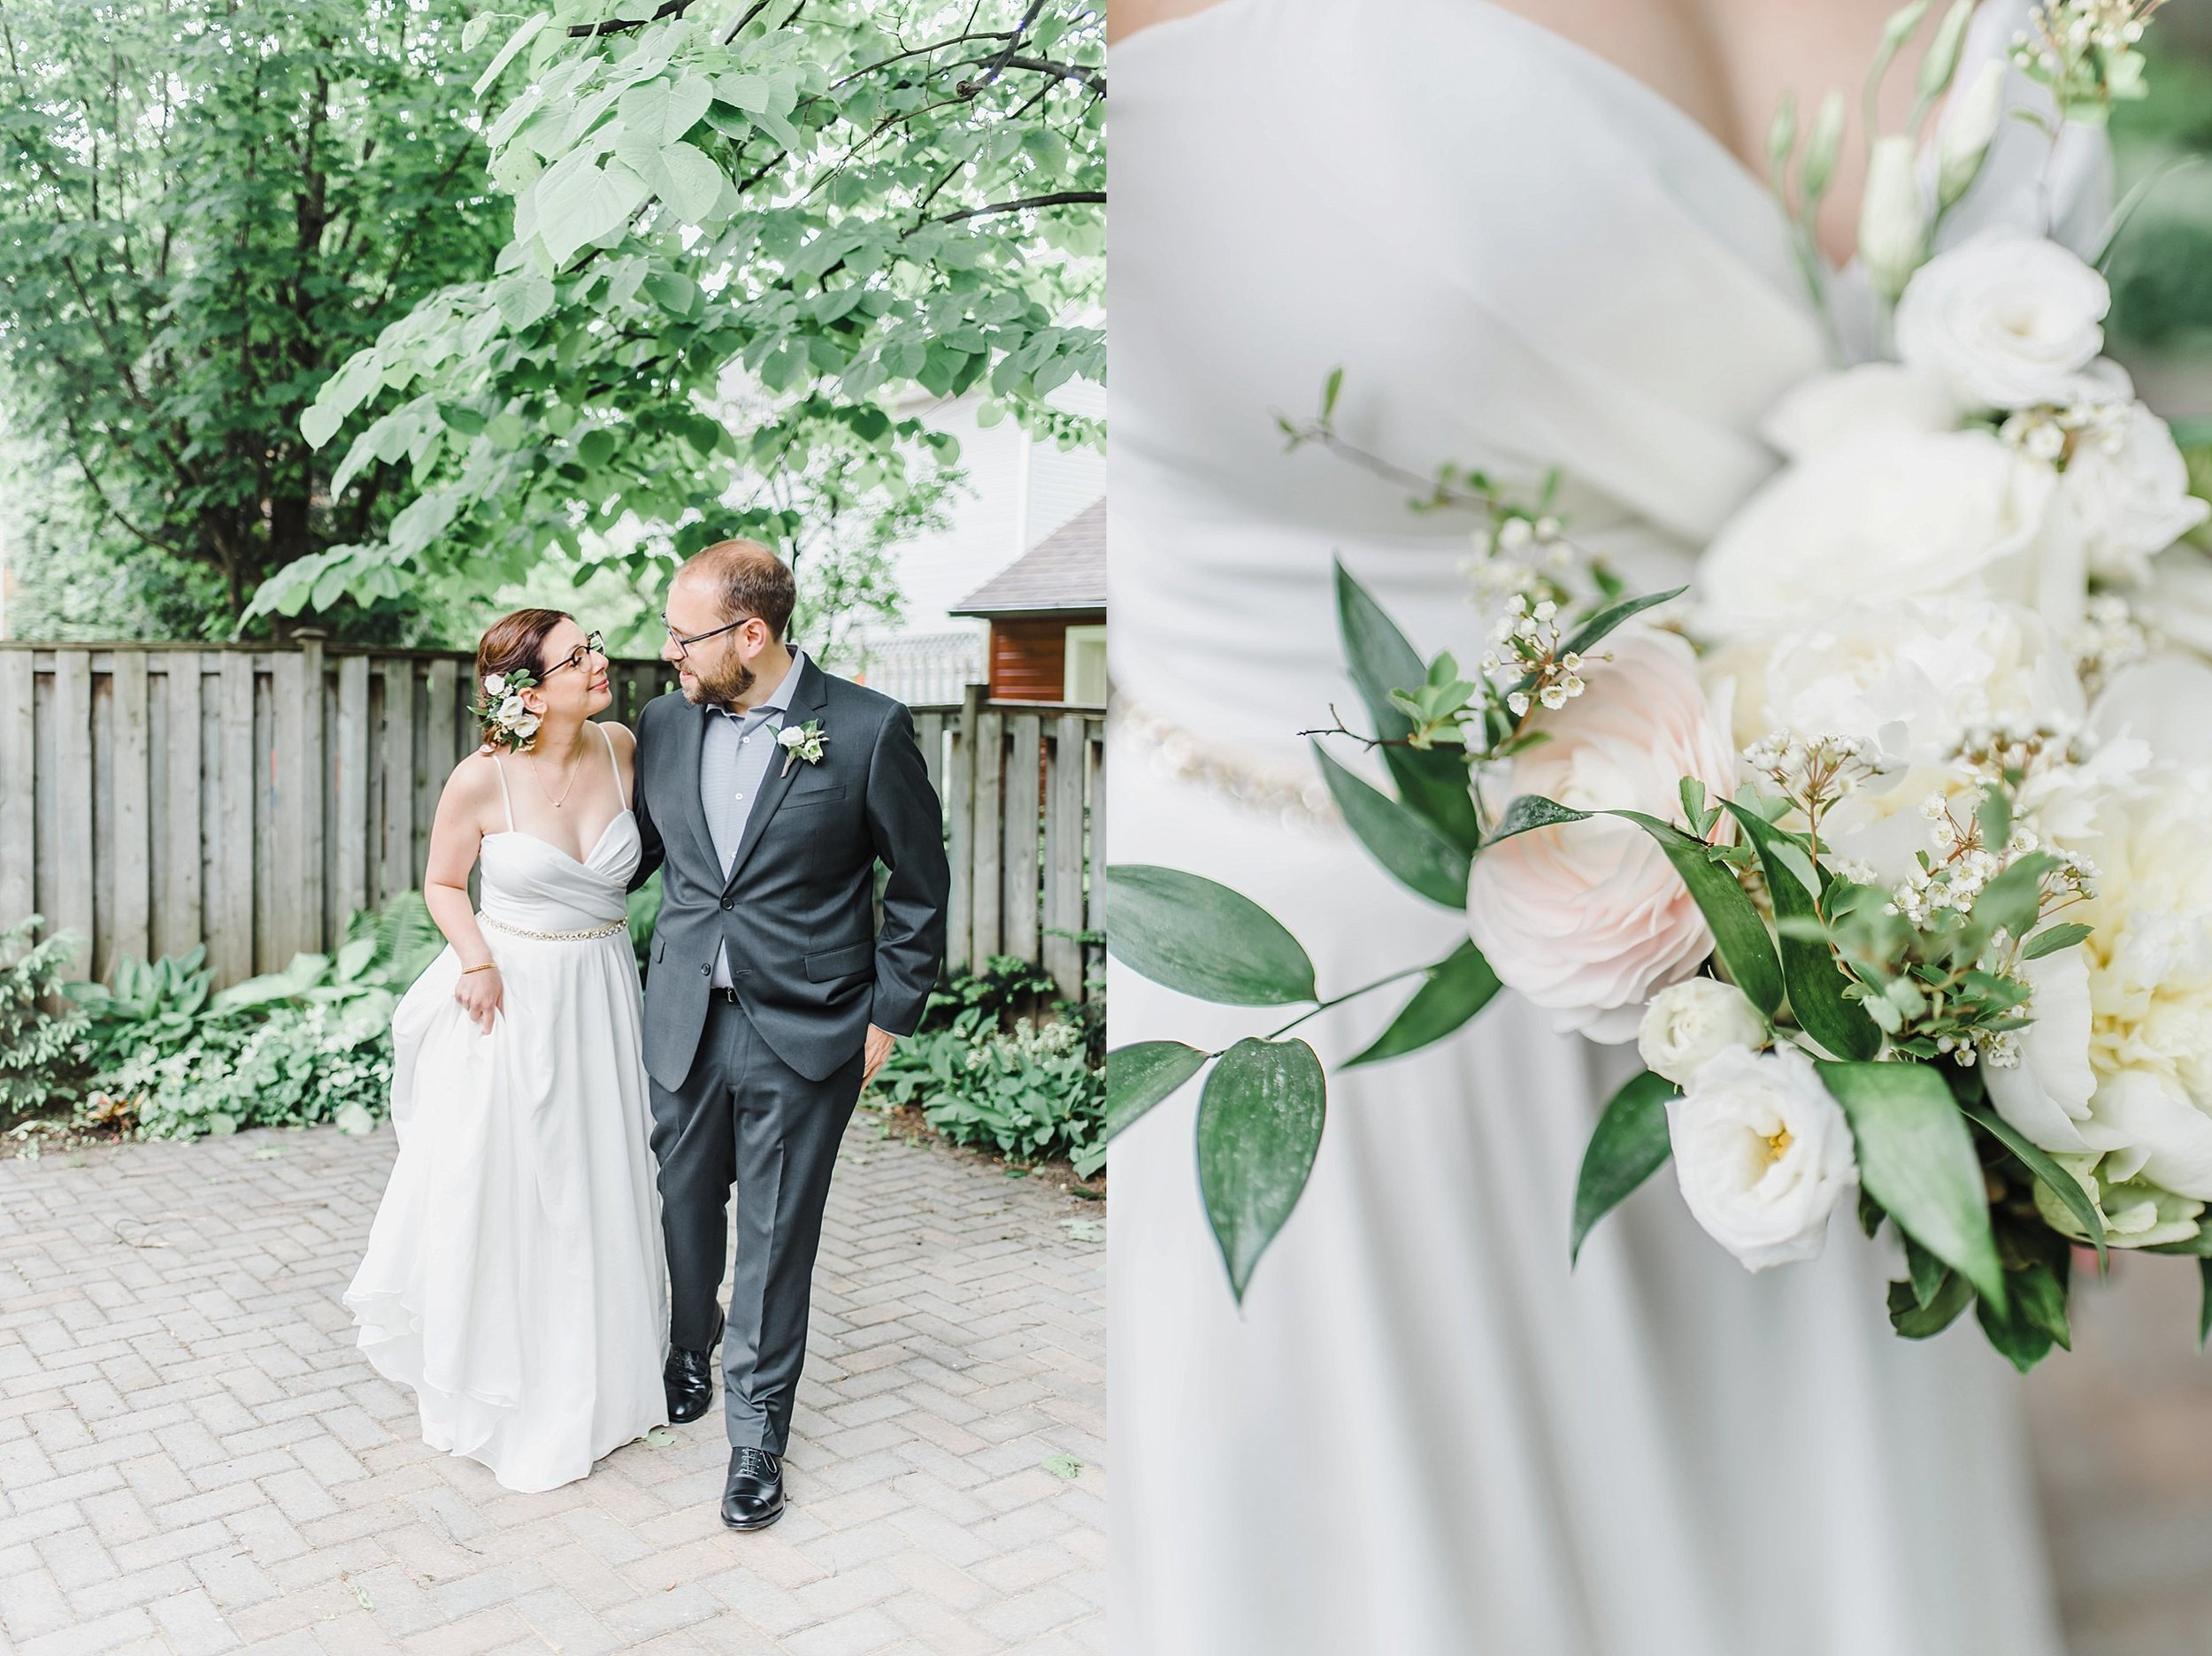 light airy indie fine art ottawa wedding photographer | Ali and Batoul Photography_1695.jpg